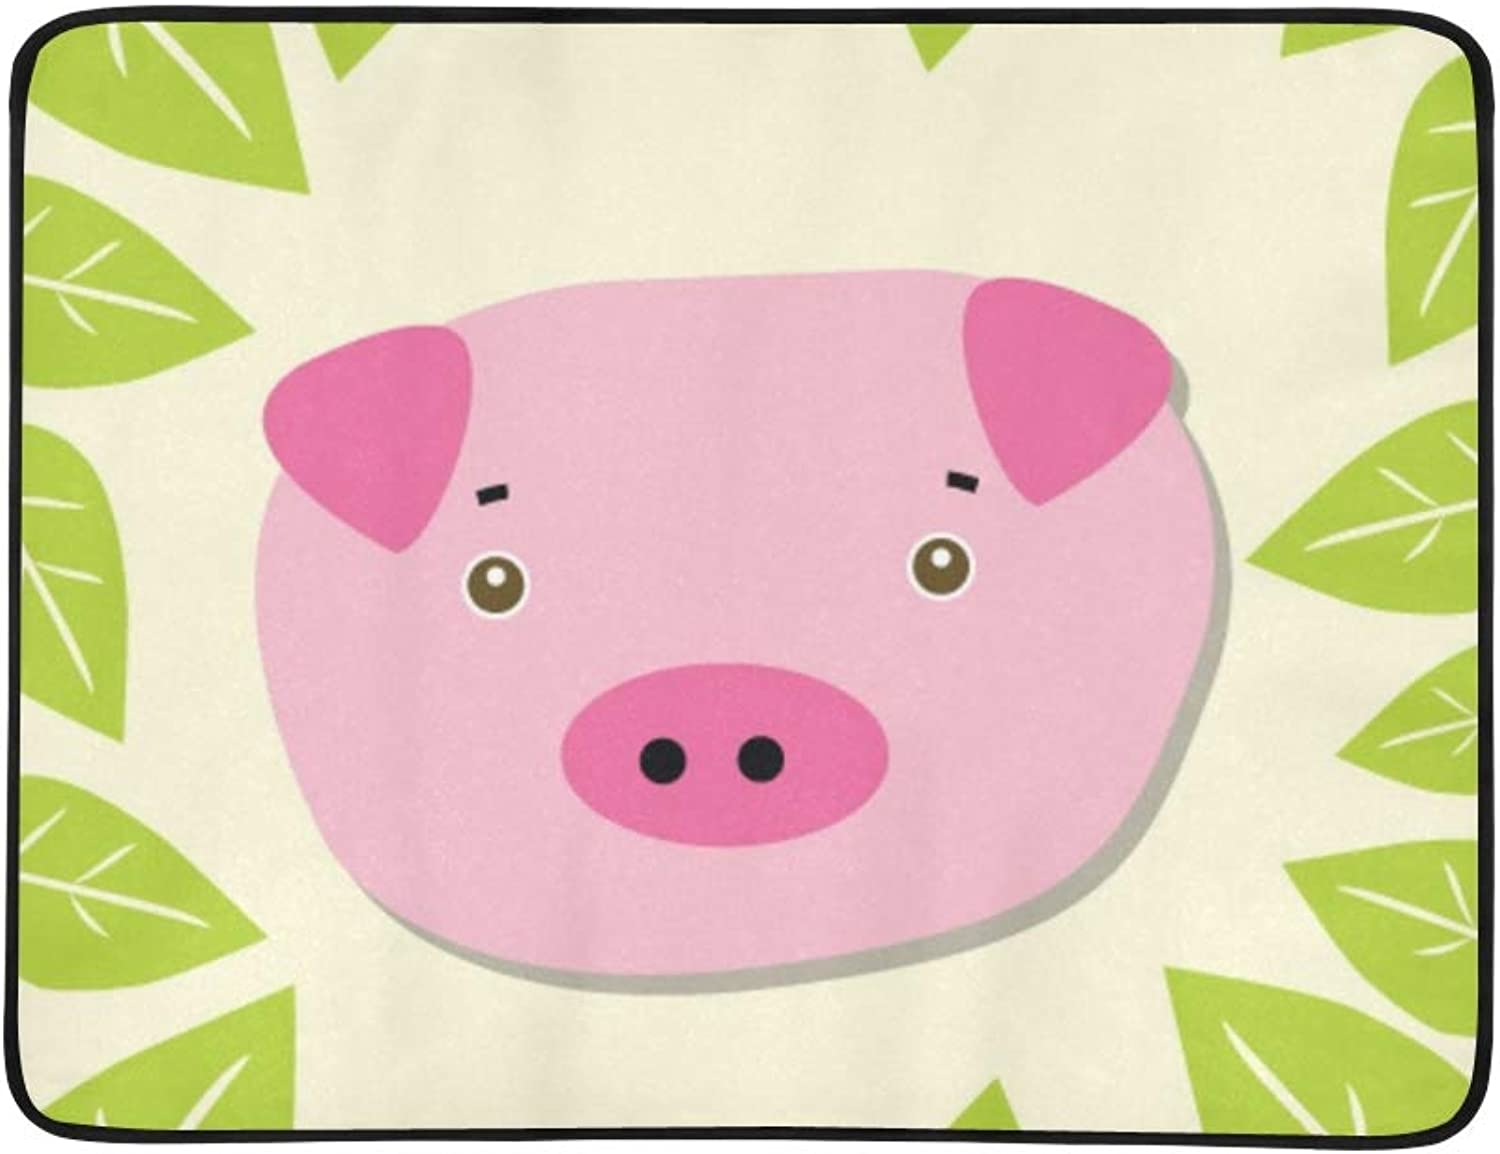 Piggy Forest 3 Portable and Foldable Blanket Mat 60x78 Inch Handy Mat for Camping Picnic Beach Indoor Outdoor Travel